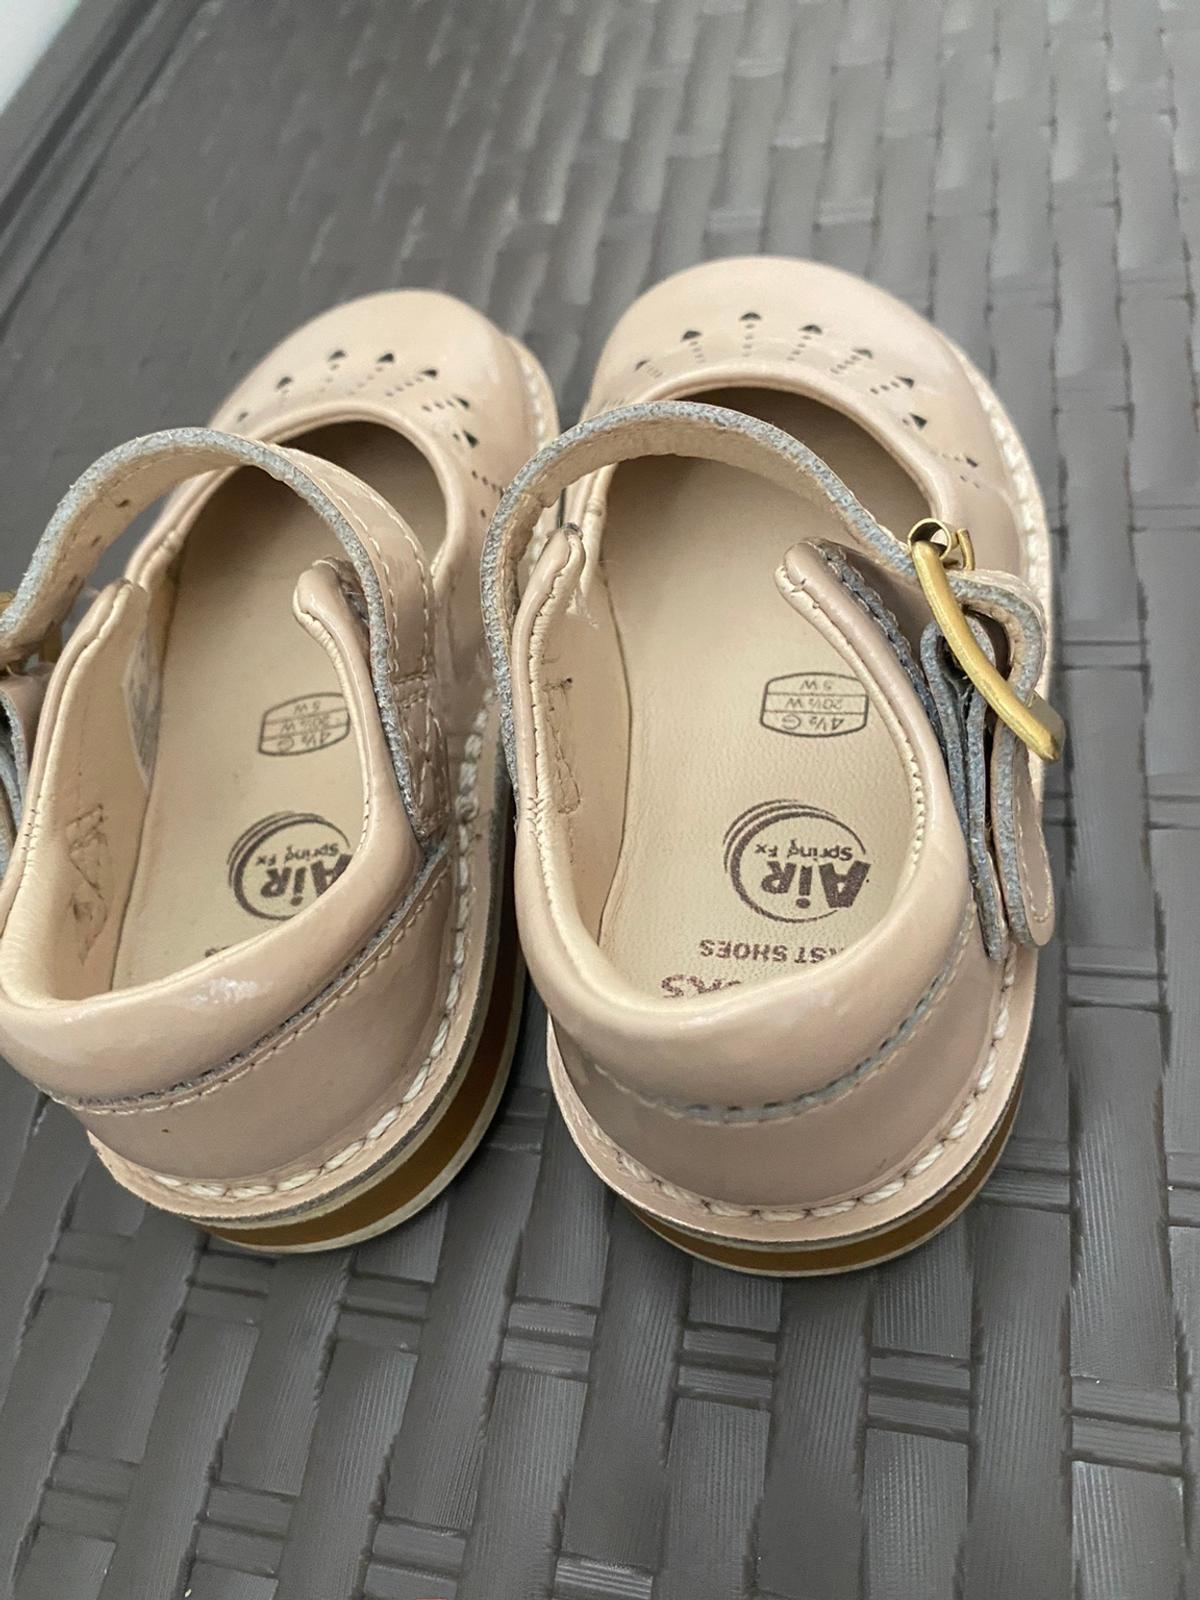 Clarks first walker shoes Air spring range 4.5G Very good used condition Beige/ nude on colour buckle fasten Pet free smoke free home Collection LE36SA